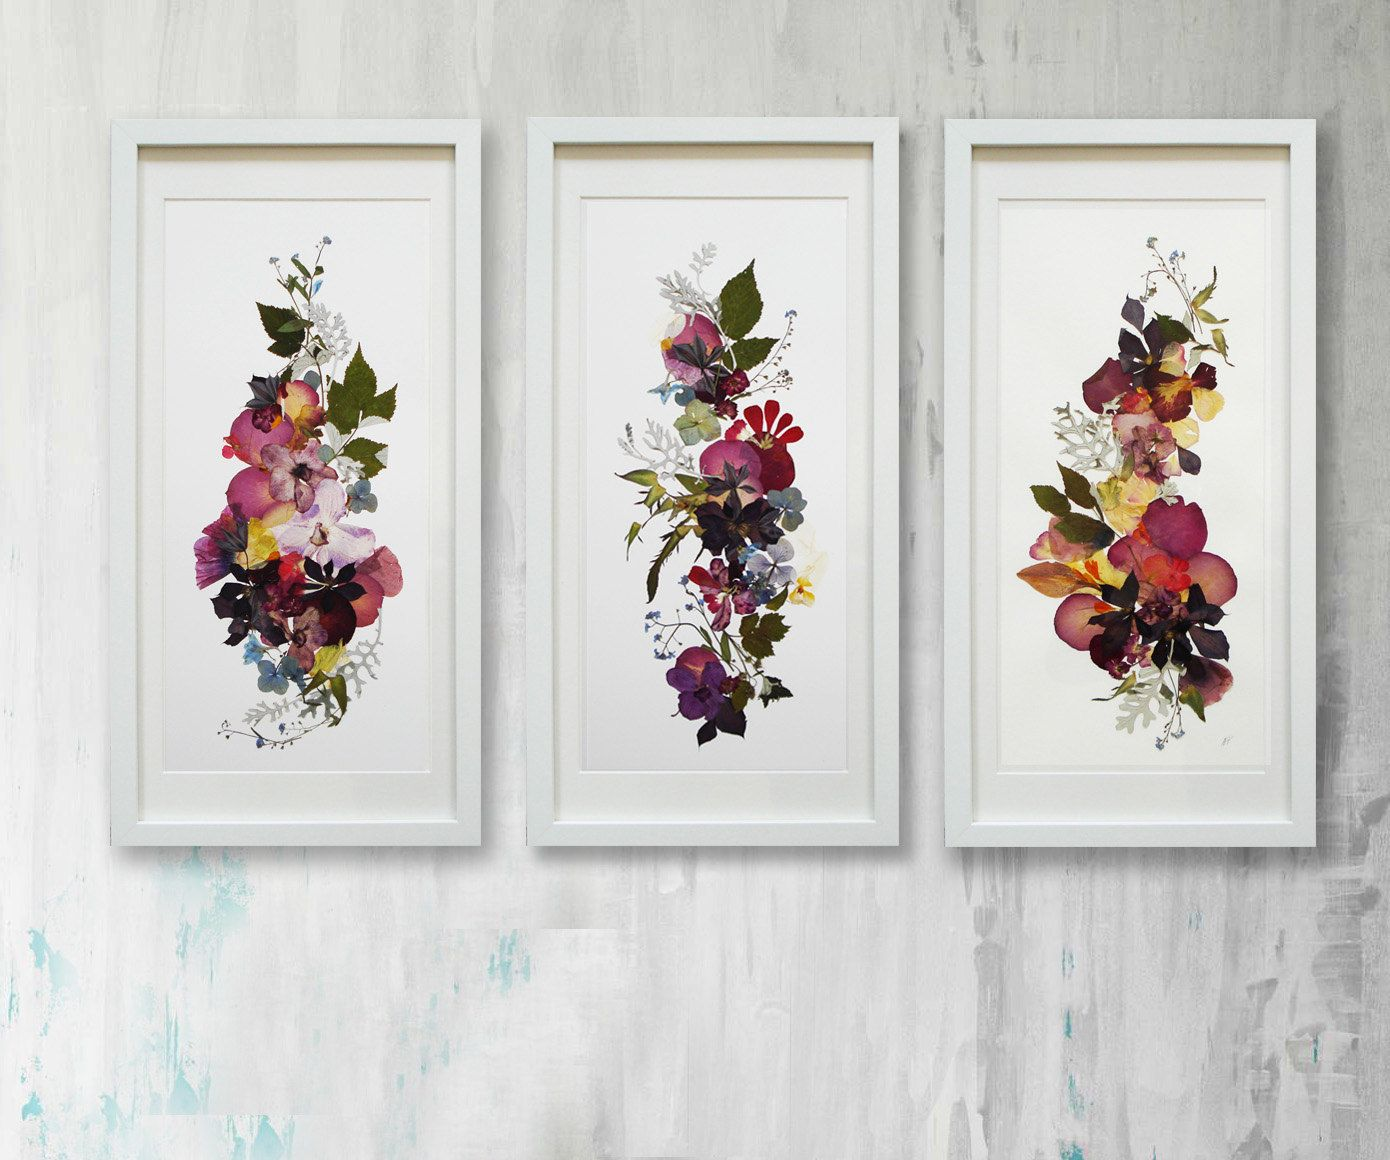 Set of 3 original plants art Floral art Horizontal artwork Flowers decor Pressed  flowers art Set